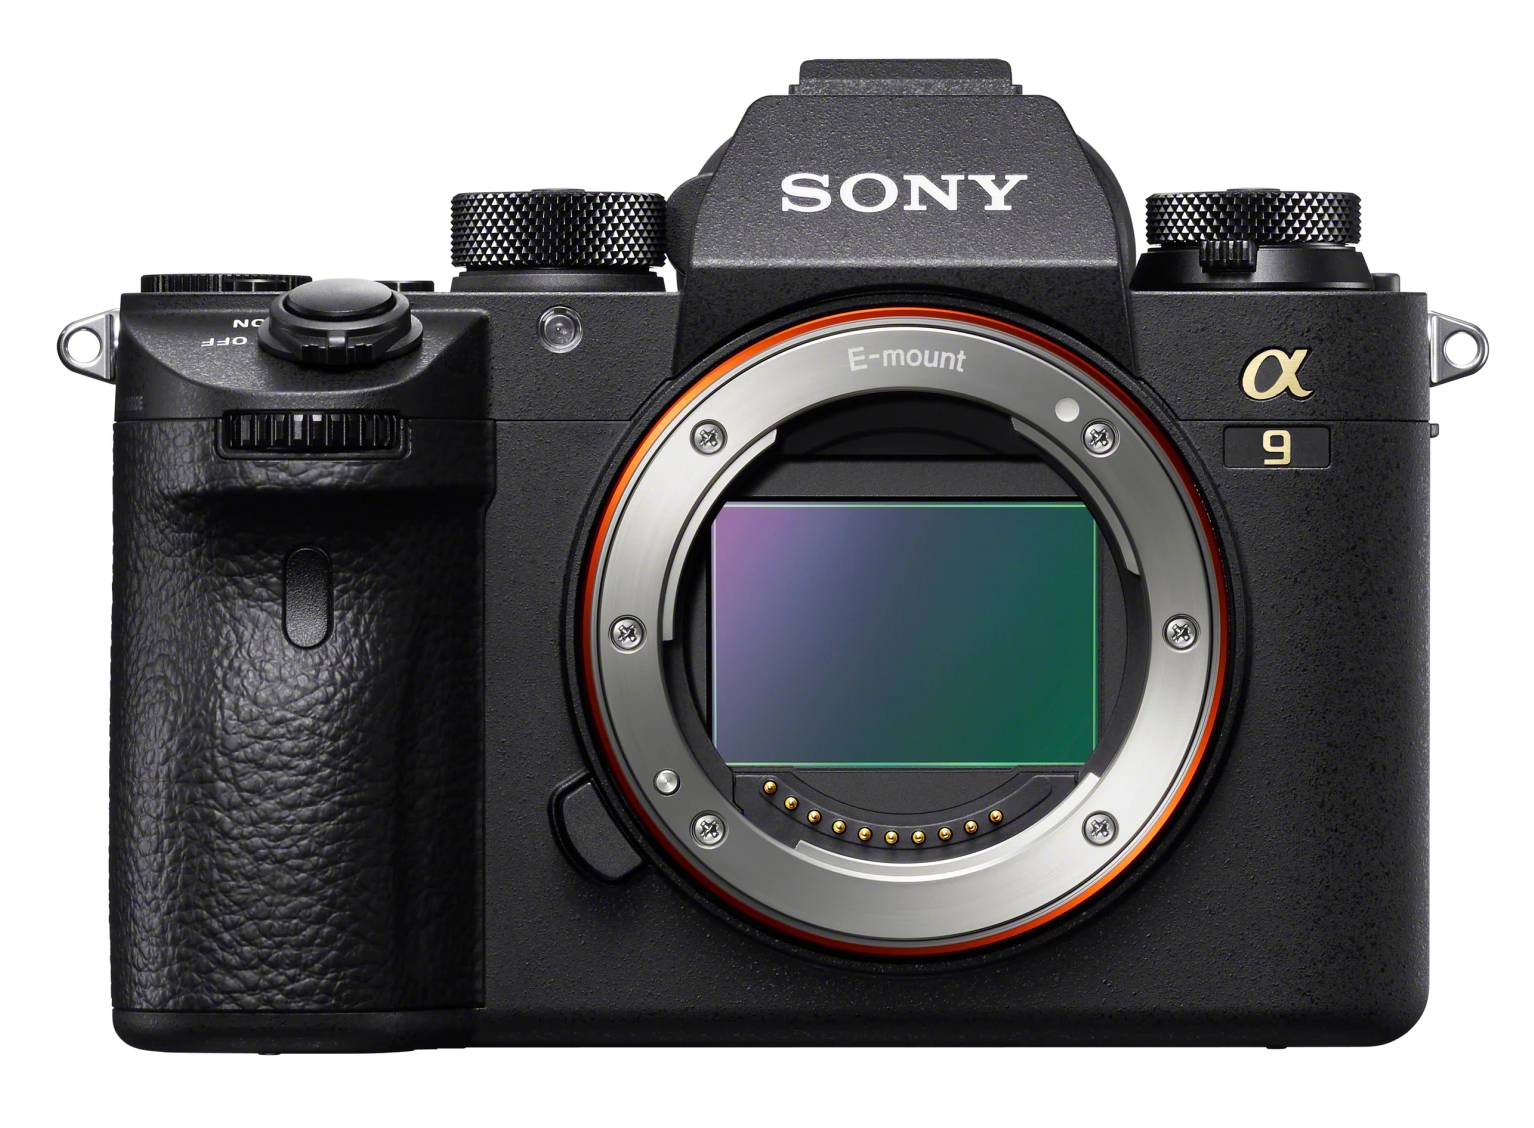 Sony's new A9 camera is a full-frame mirrorless with ludicrous speed